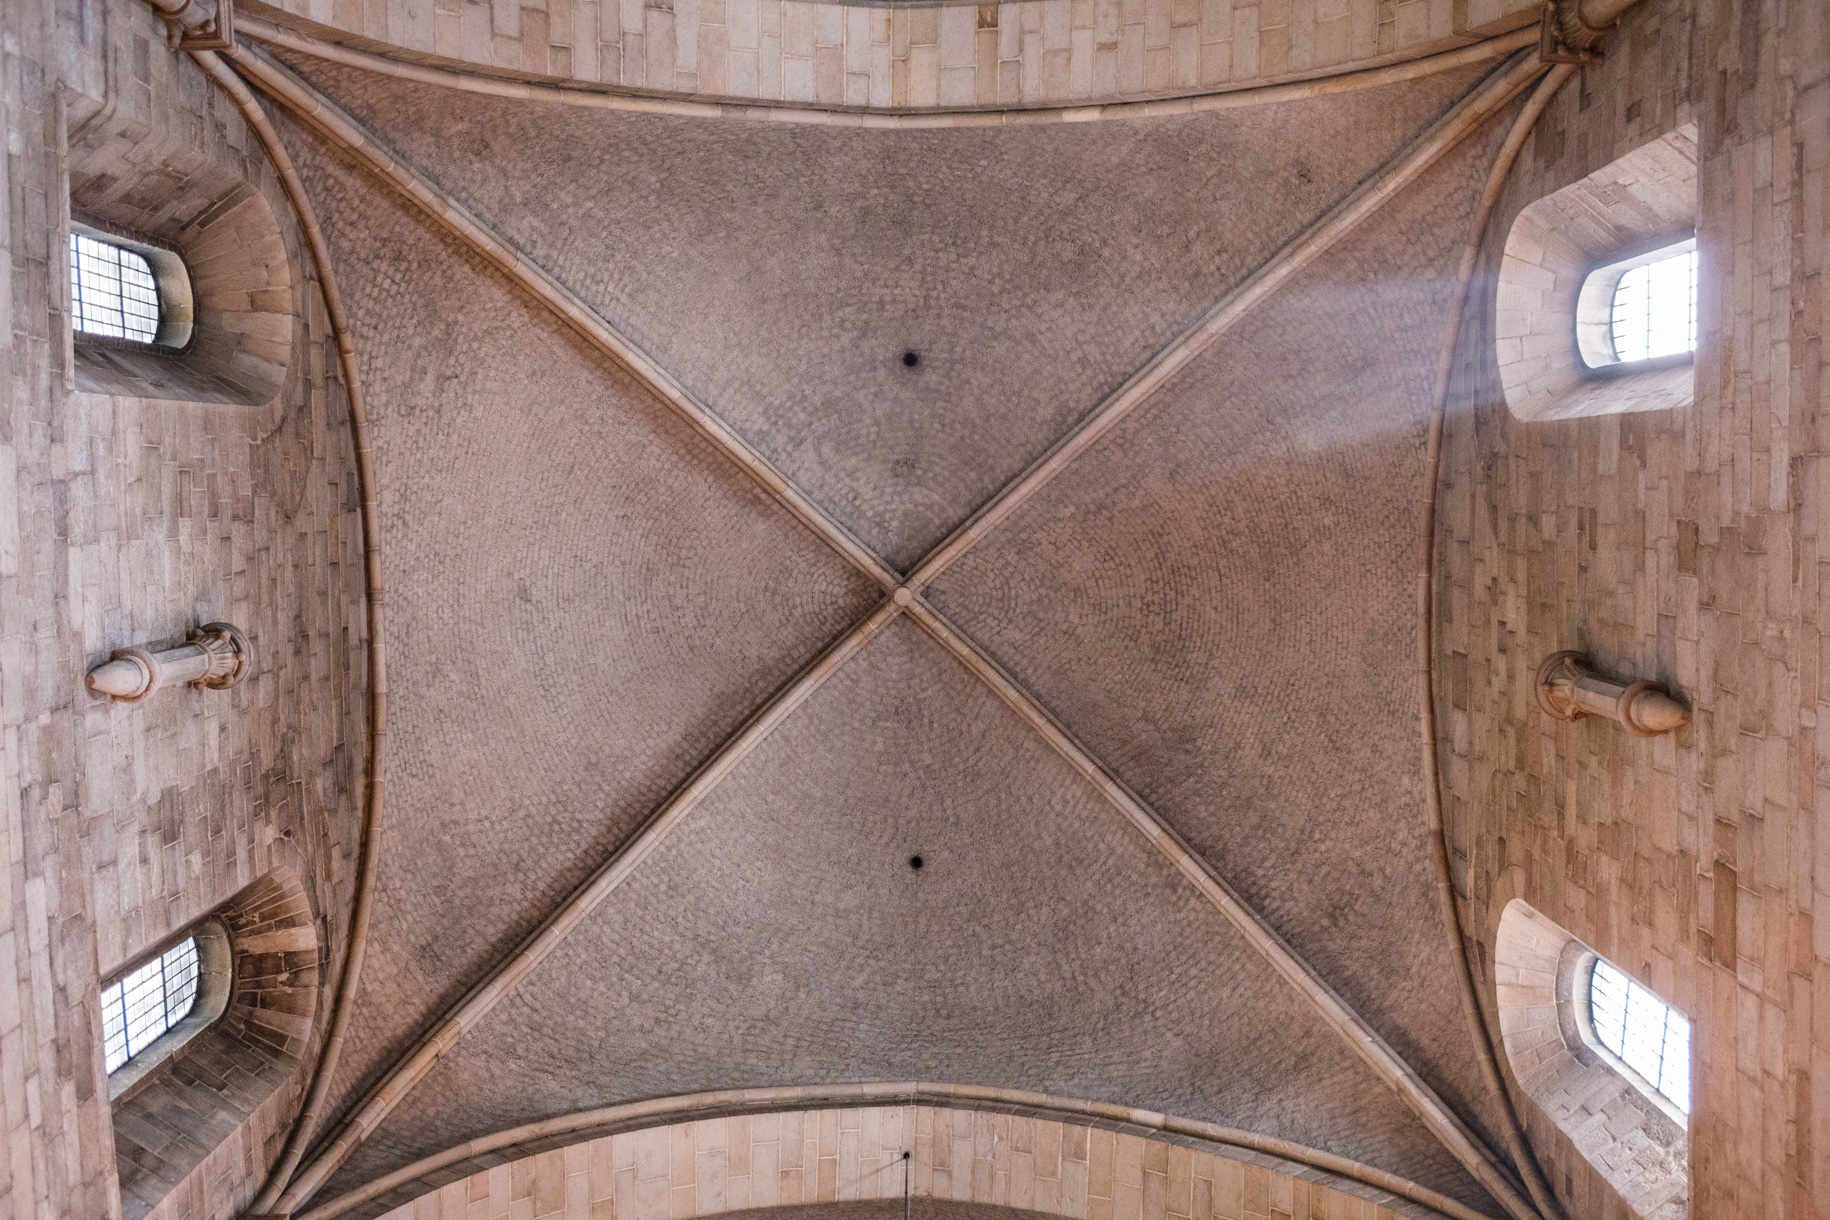 The ceiling of the Lund Domkyrka in Lund, Sweden.